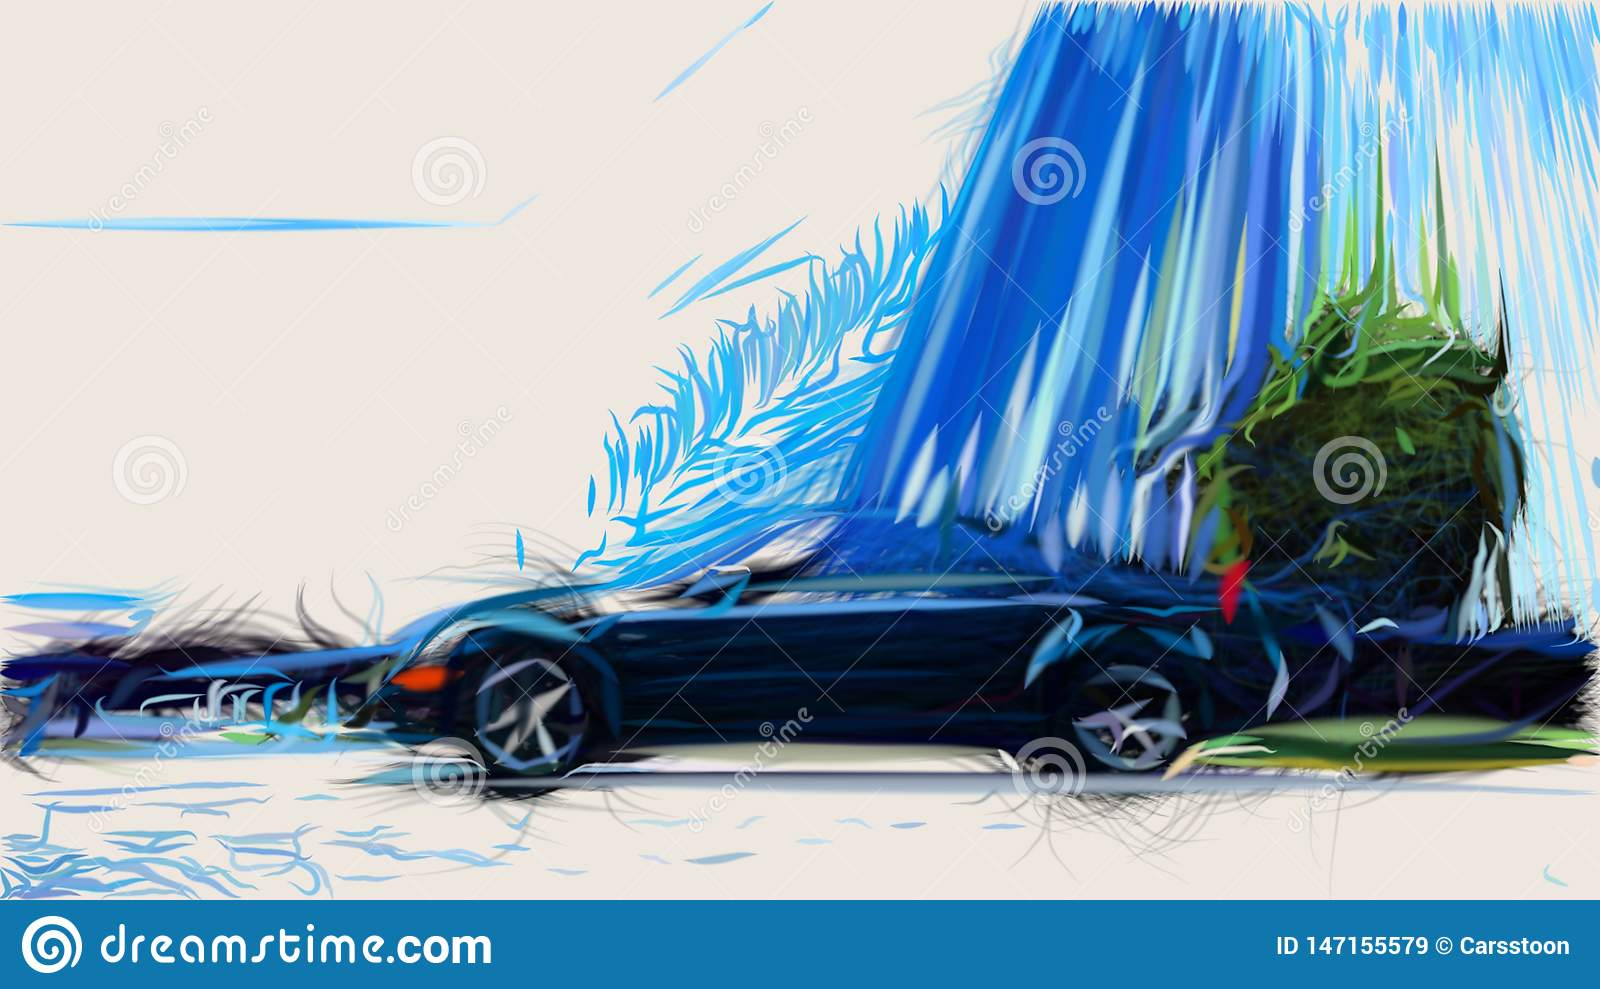 hight resolution of 2005 infiniti g35 coupe id 3805 drawing fast car with beautiful bright colors lines and create this awesome automobile design